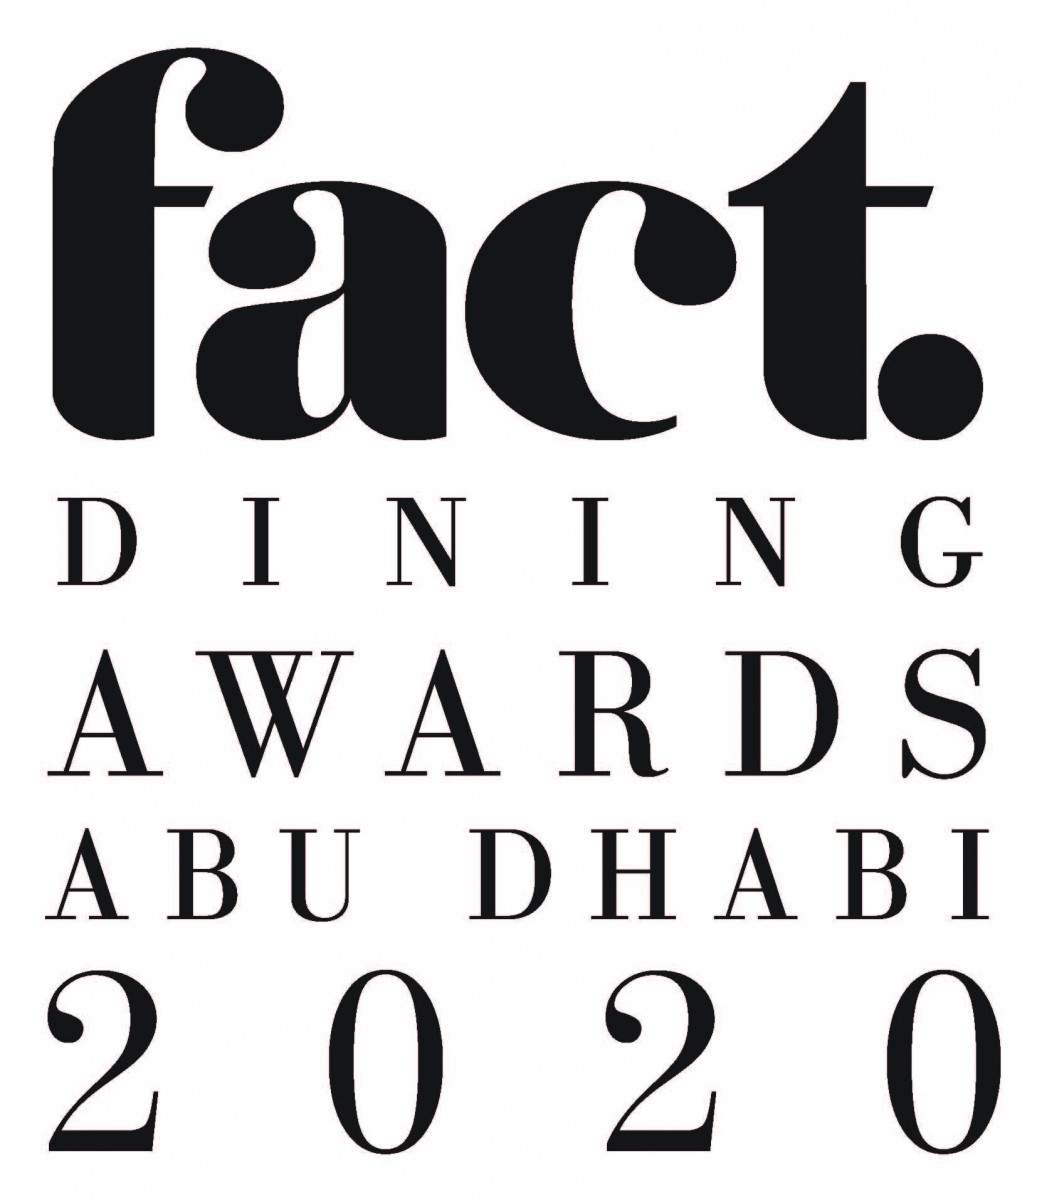 Fact Dining Awards Abu Dhabi 2020